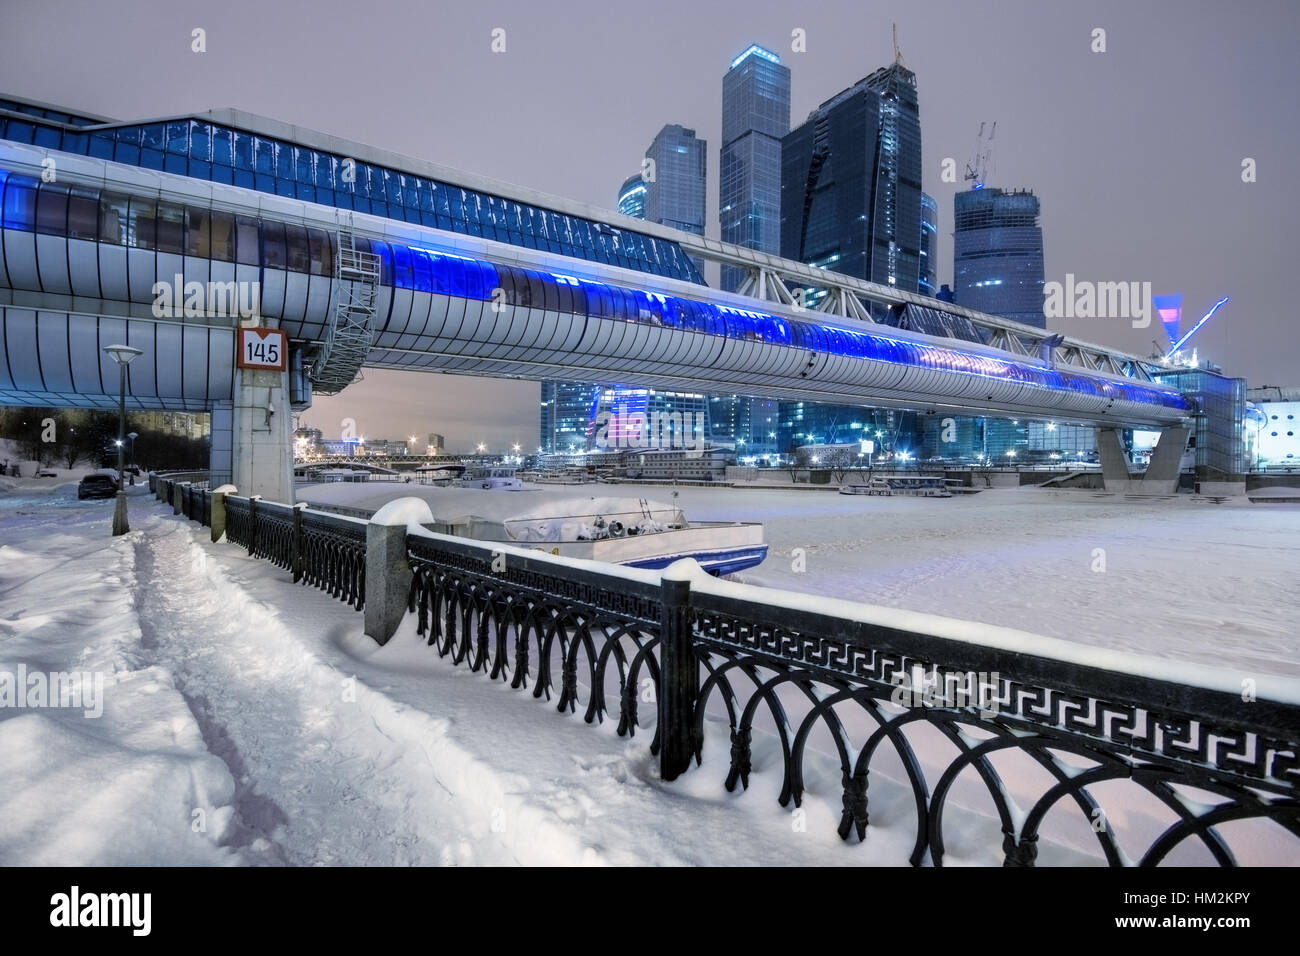 Moscow City - International Business Center. The bridge Bagration and skyscrapers in Moscow. - Stock Image